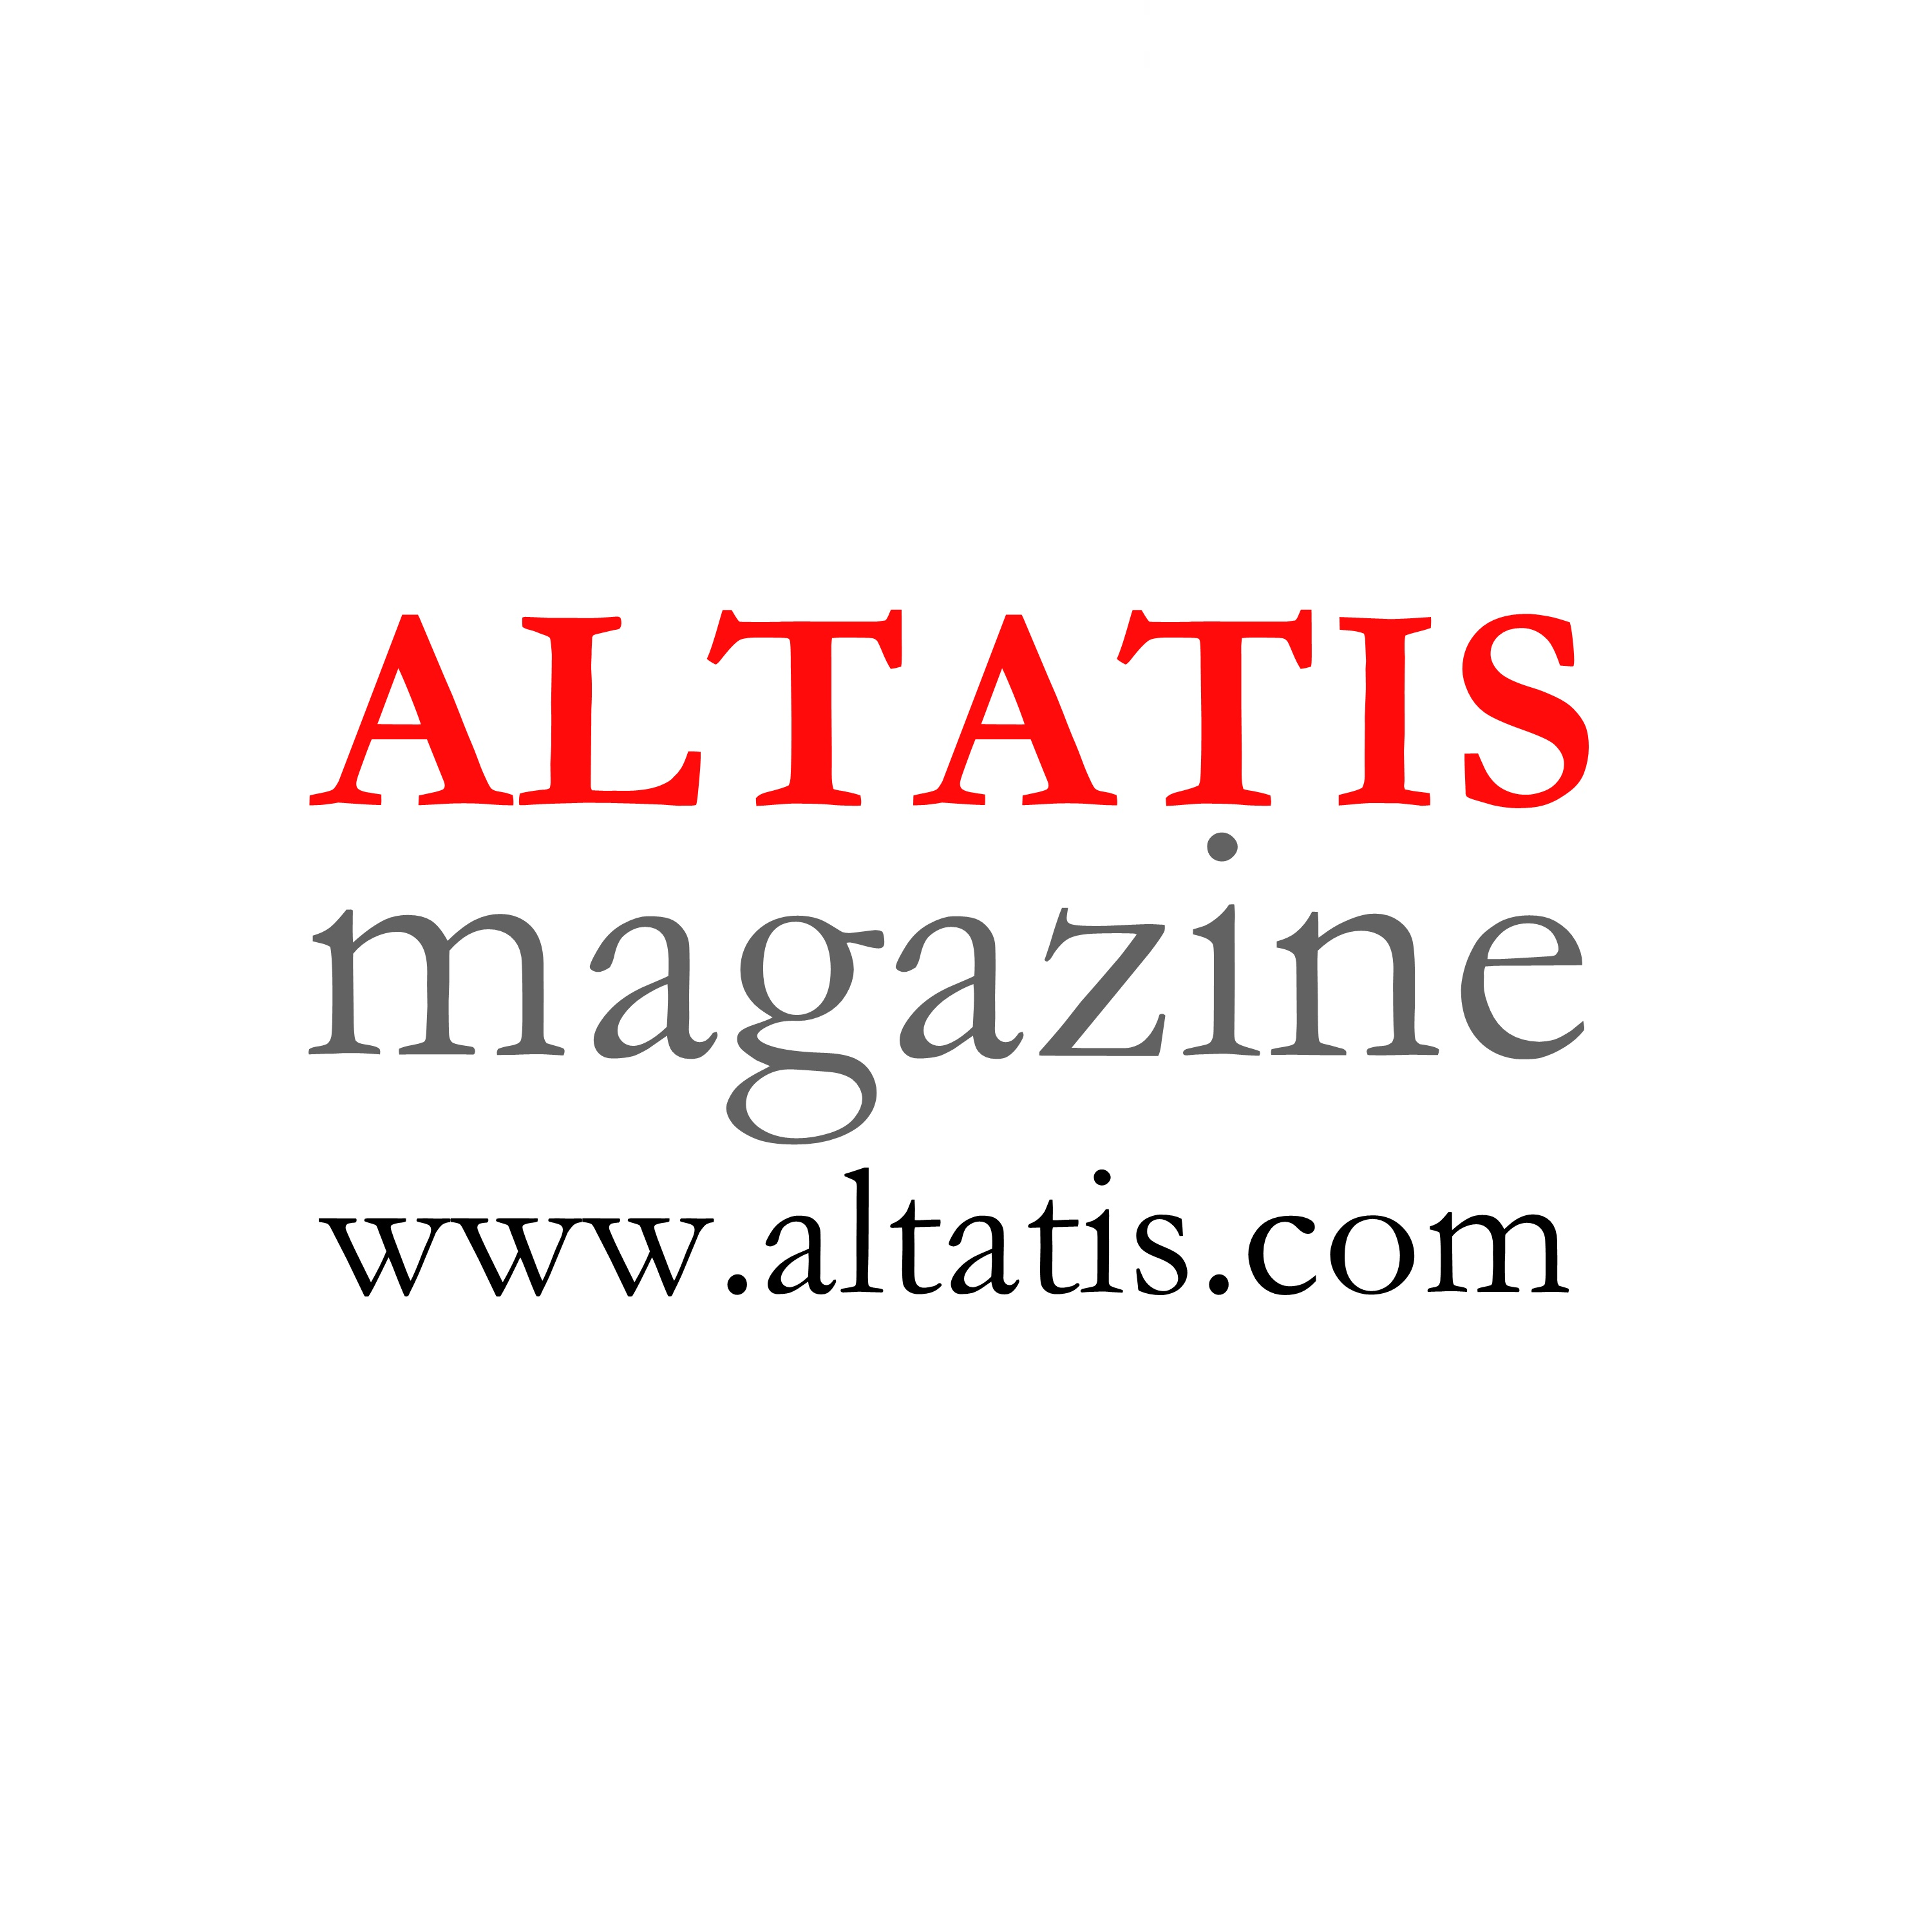 The Altatis Magazine